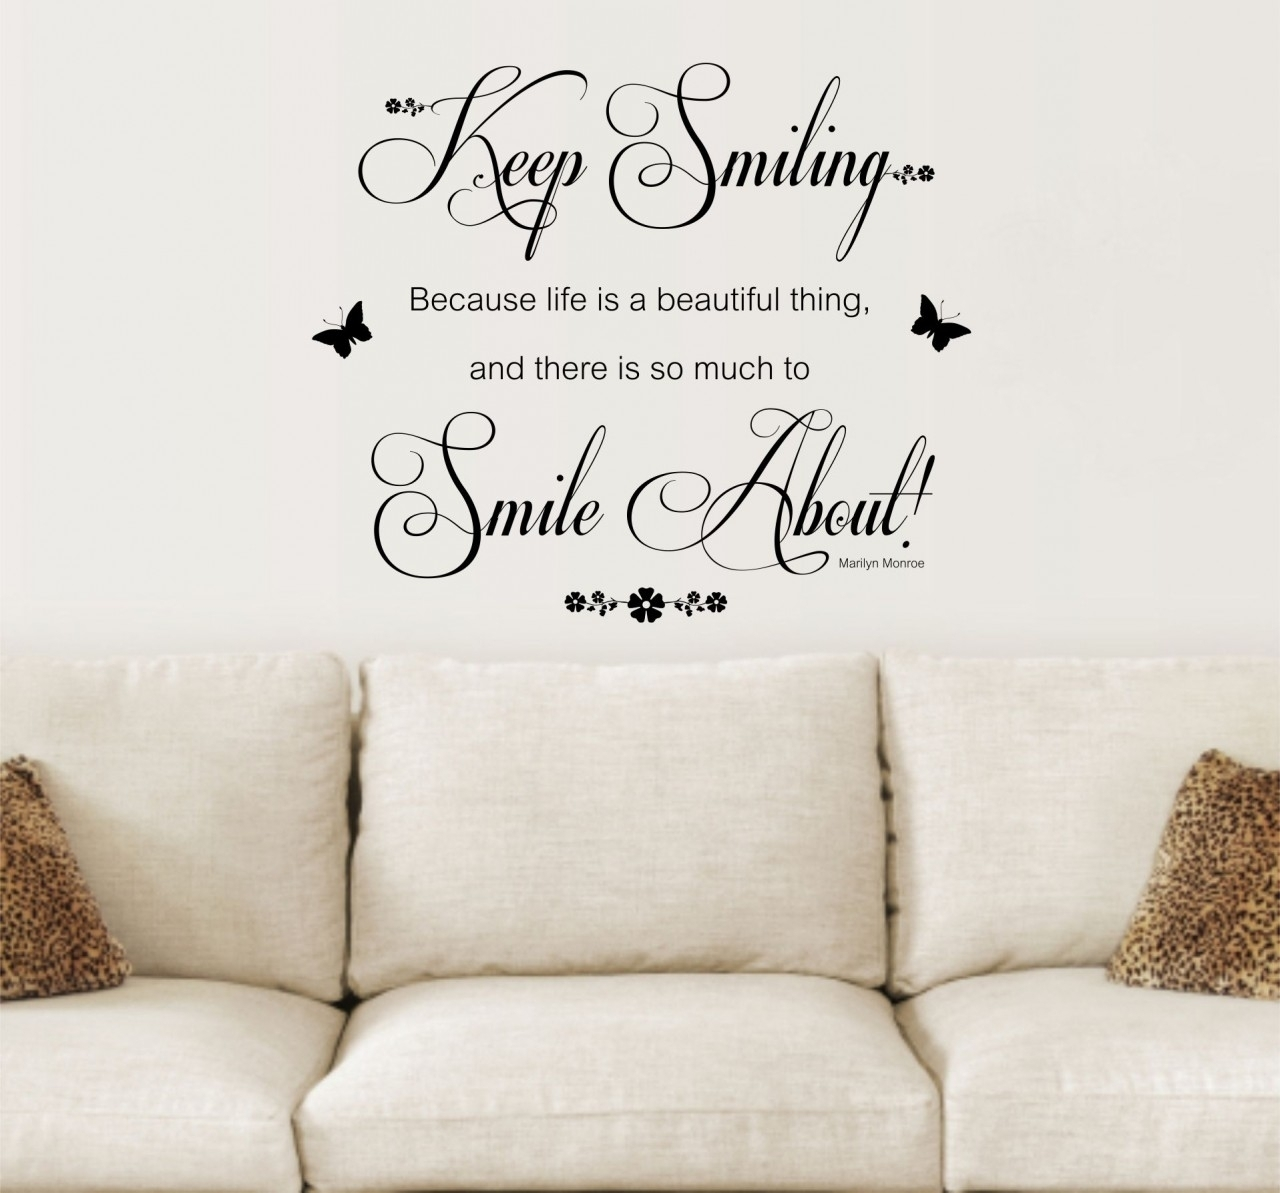 Awesome Home Decor Sayings Walls Gallery | Wall Decoration 2018 in Newest Wall Art Sayings